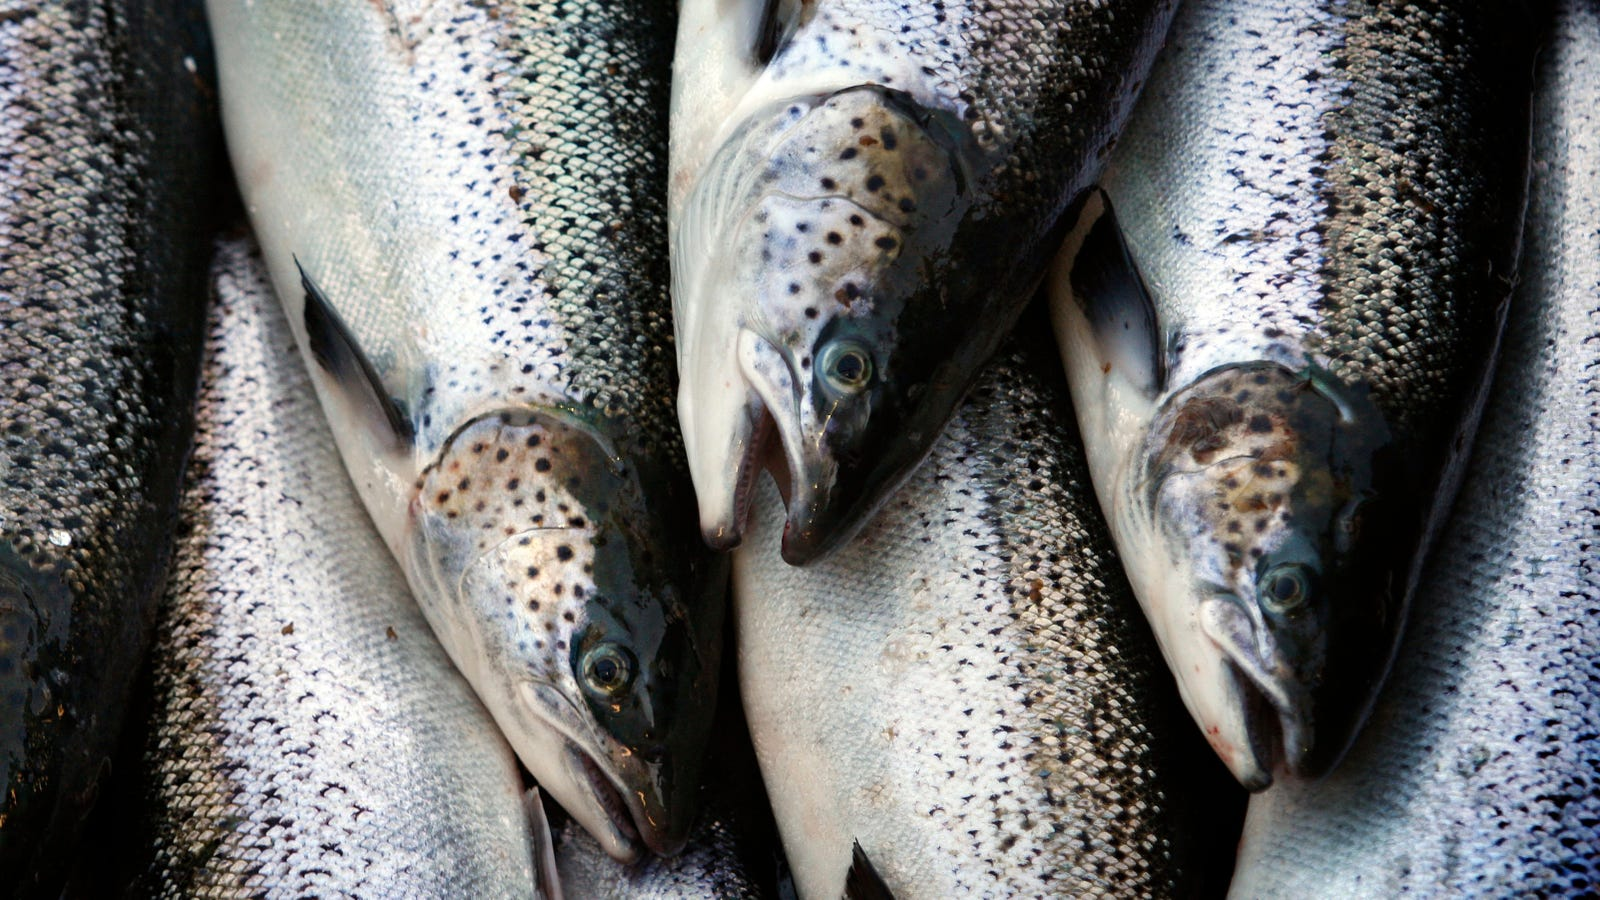 QnA VBage FDA Lifts Import Ban on Genetically Modified Salmon That Reach Market Twice as Fast